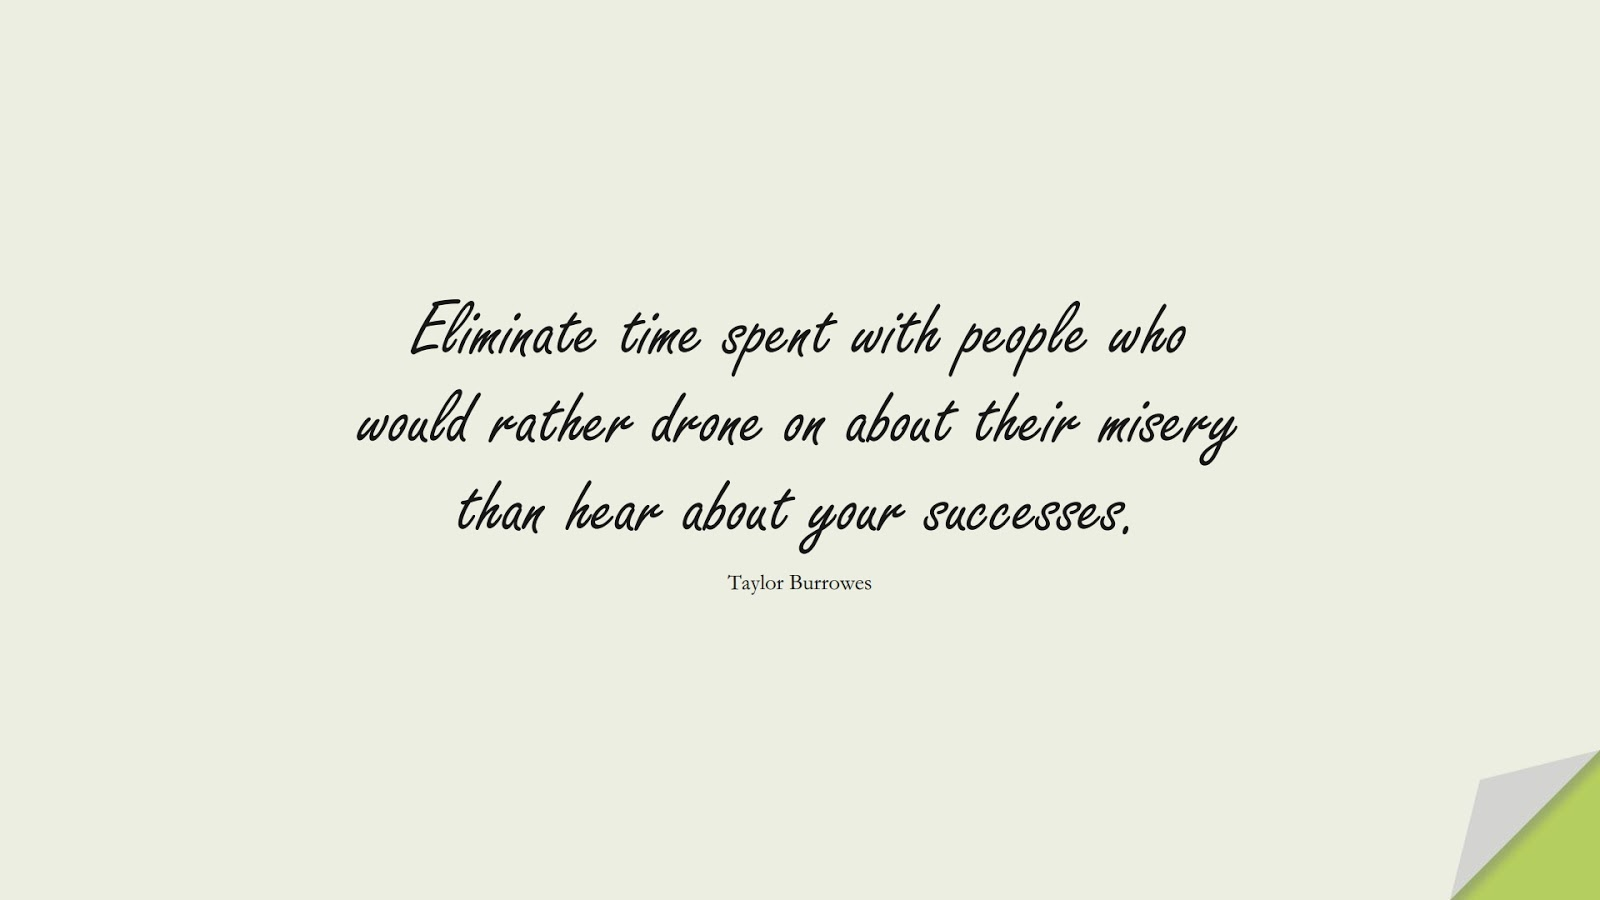 Eliminate time spent with people who would rather drone on about their misery than hear about your successes. (Taylor Burrowes);  #RelationshipQuotes